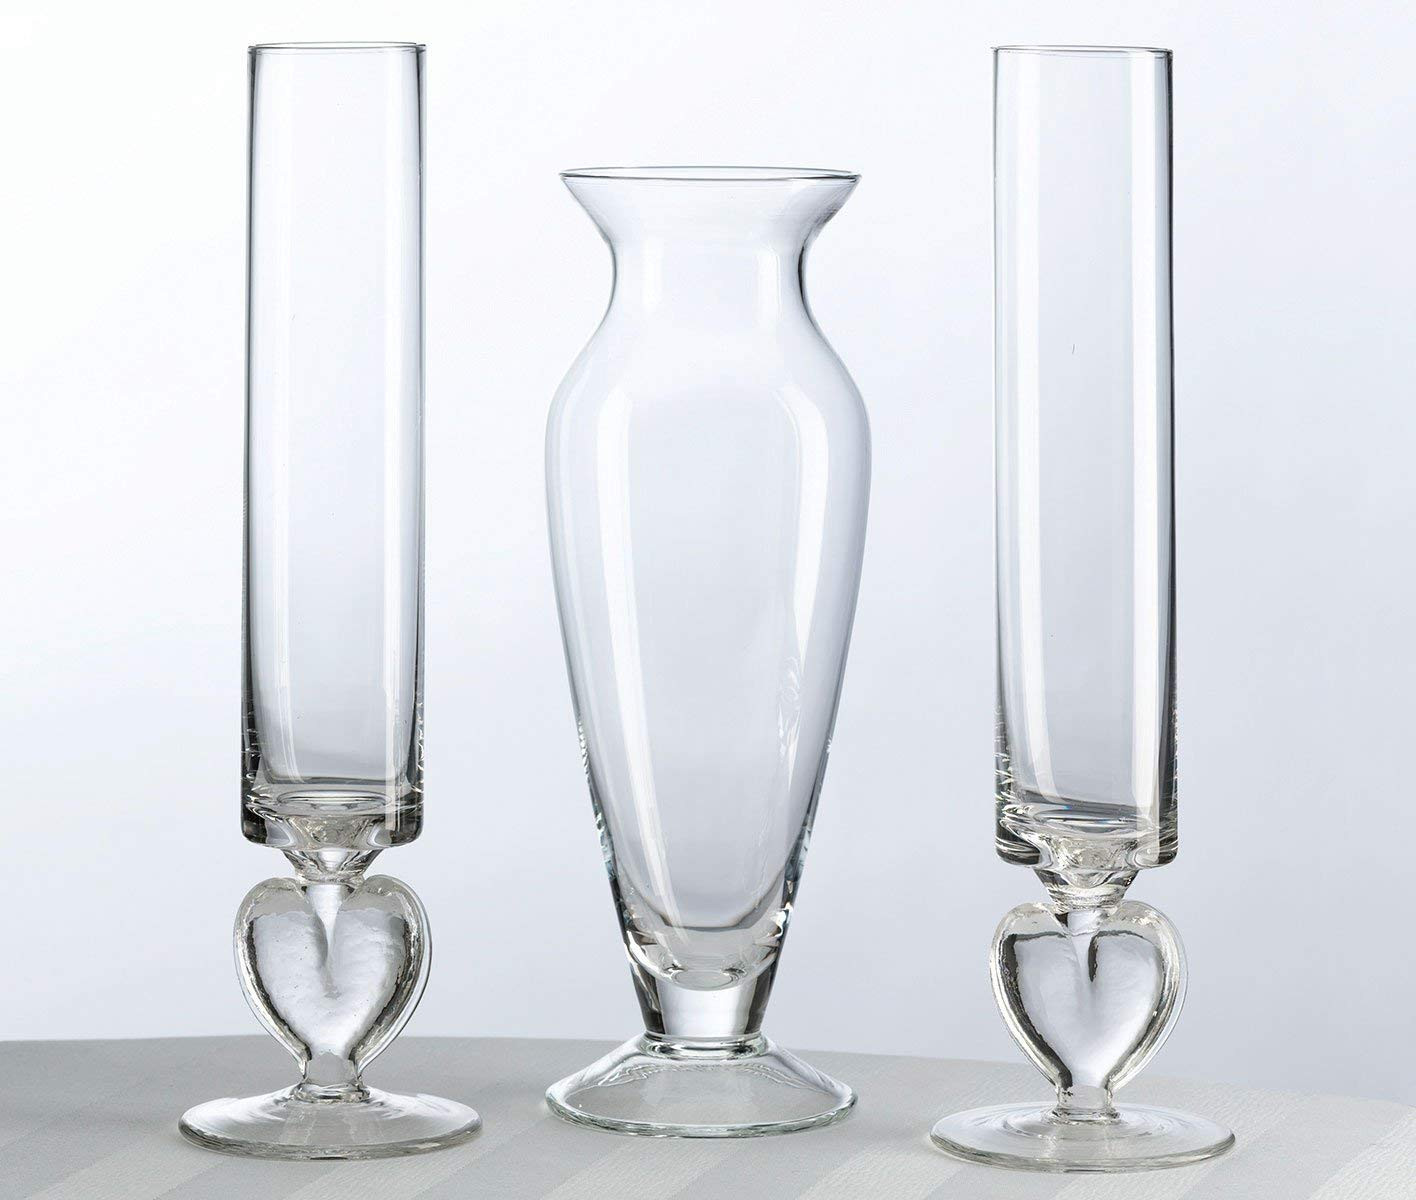 Ac Moore Glass Vases Of Amazon Com Lillian Rose Unity Sand Ceremony Wedding Vase Set Home with Regard to Amazon Com Lillian Rose Unity Sand Ceremony Wedding Vase Set Home Kitchen